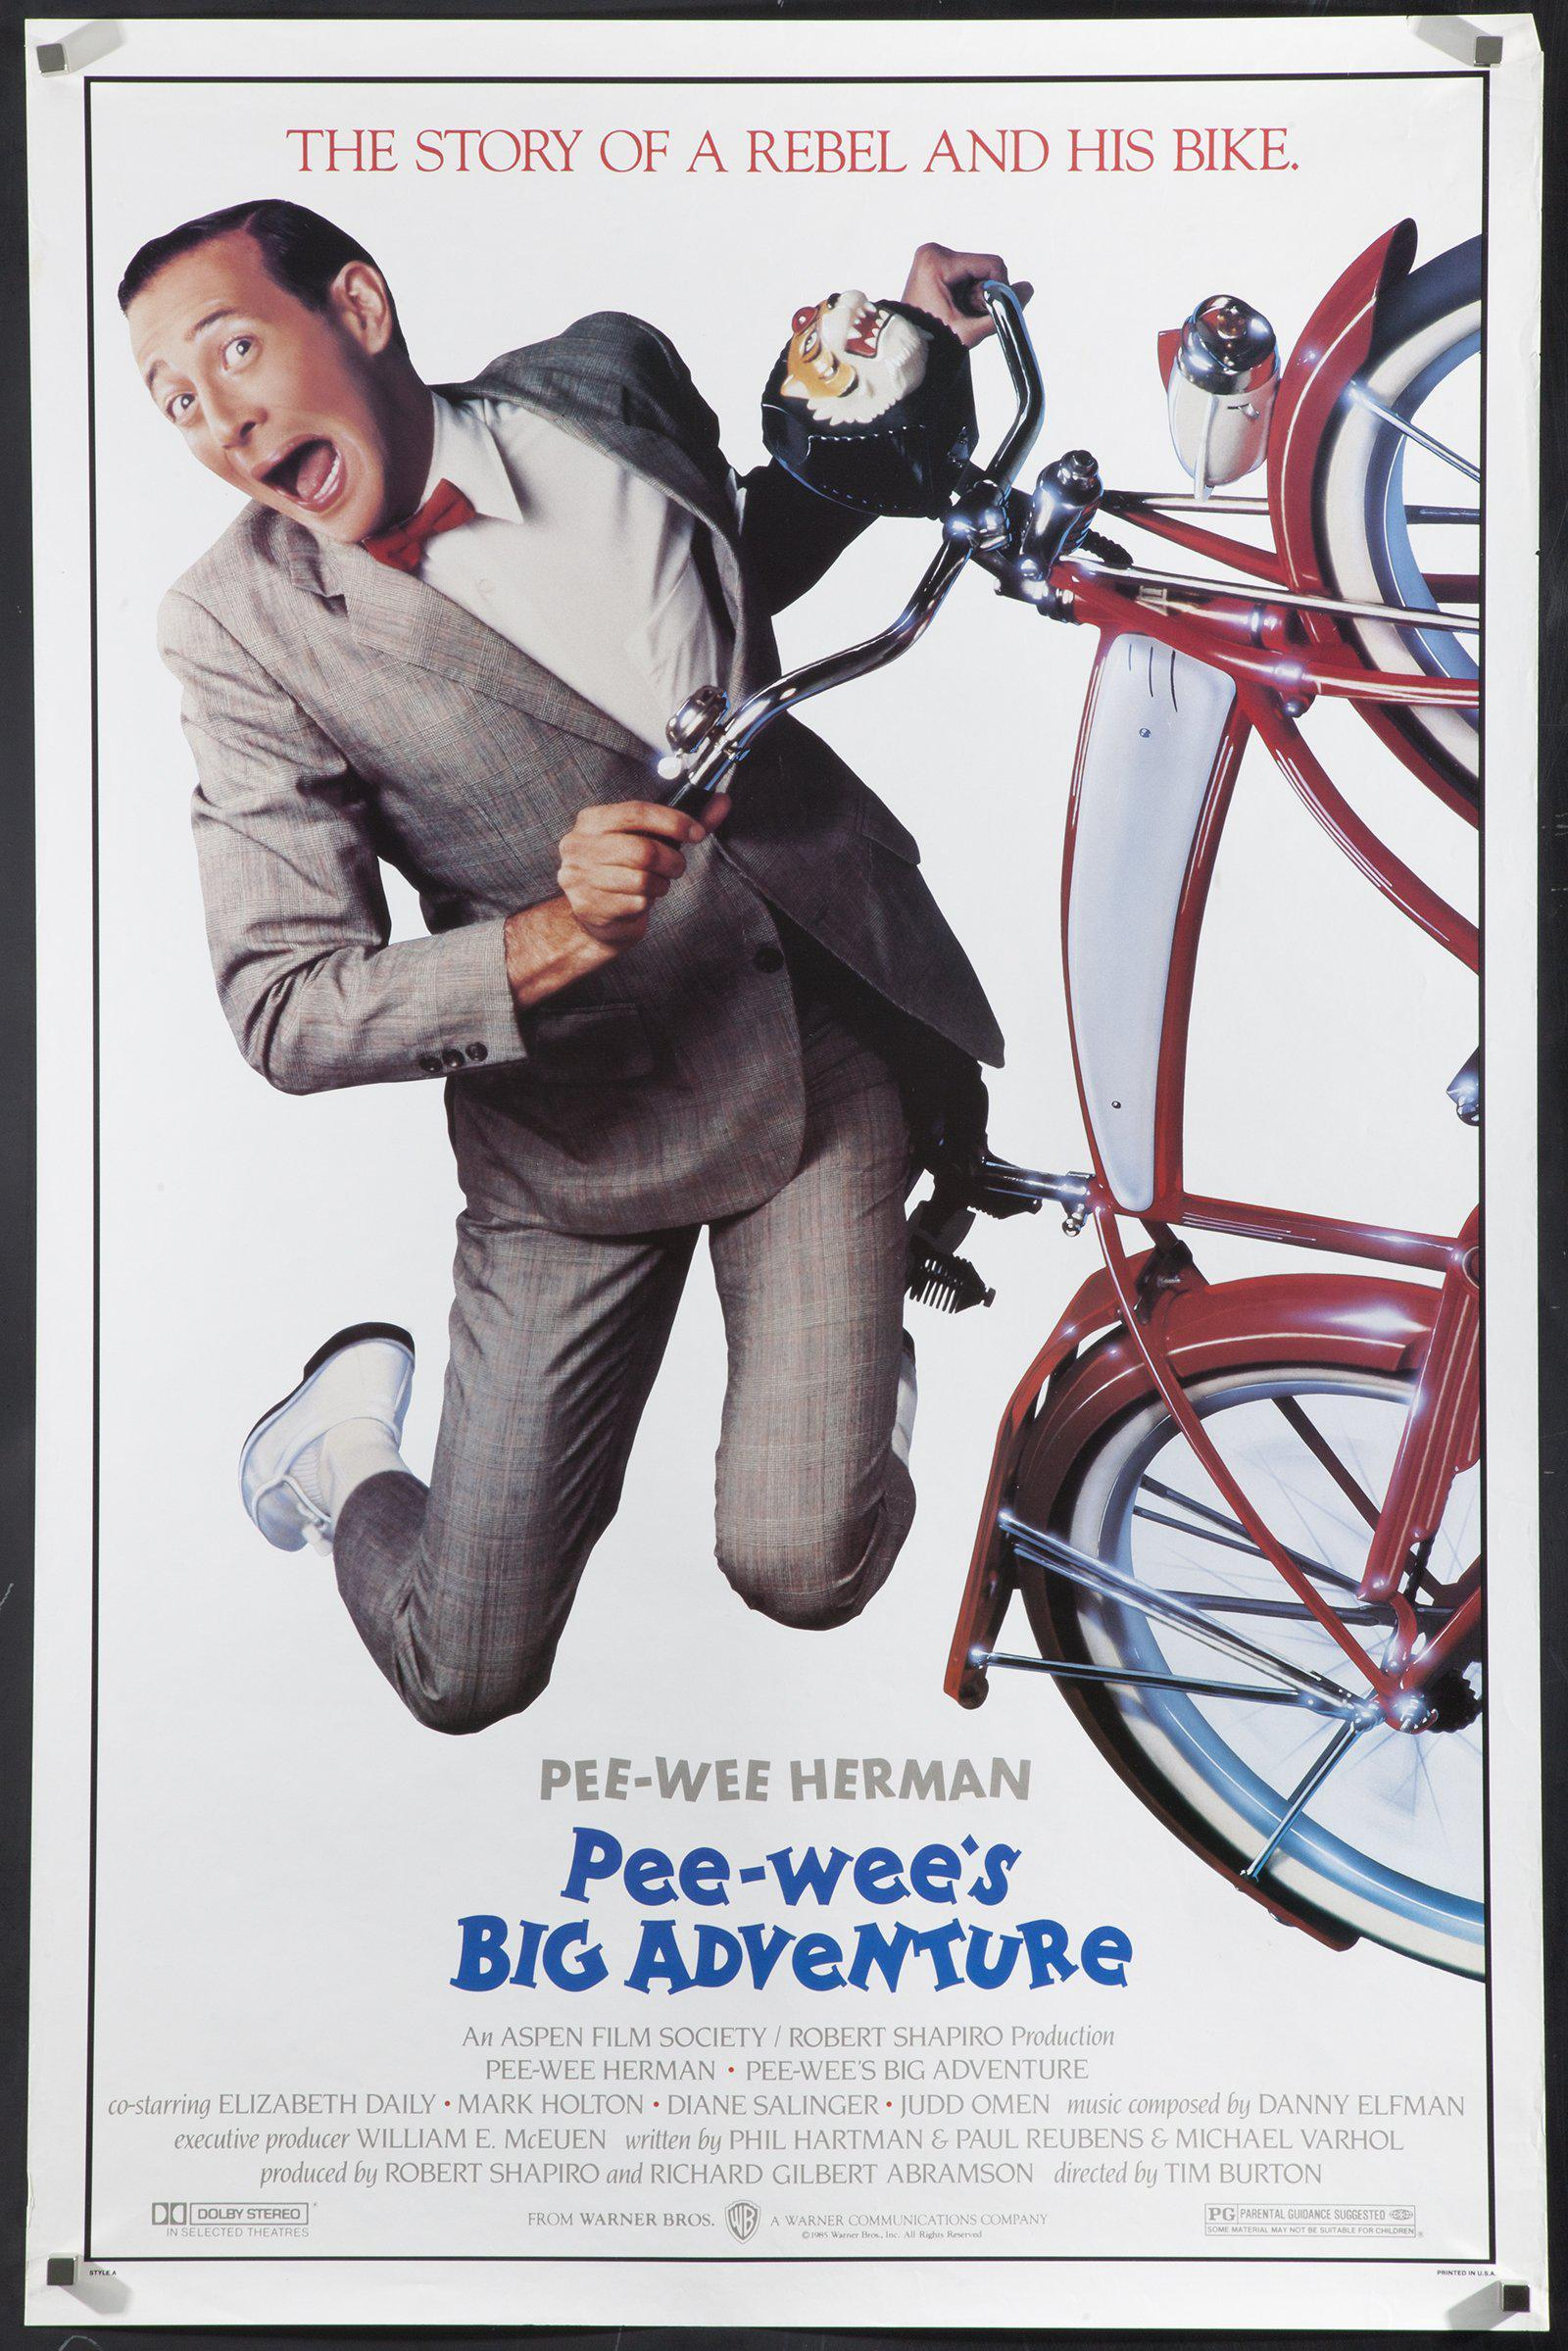 Pee-Wee's Big Adventure 1 Sheet (27x41) Original Vintage Movie Poster